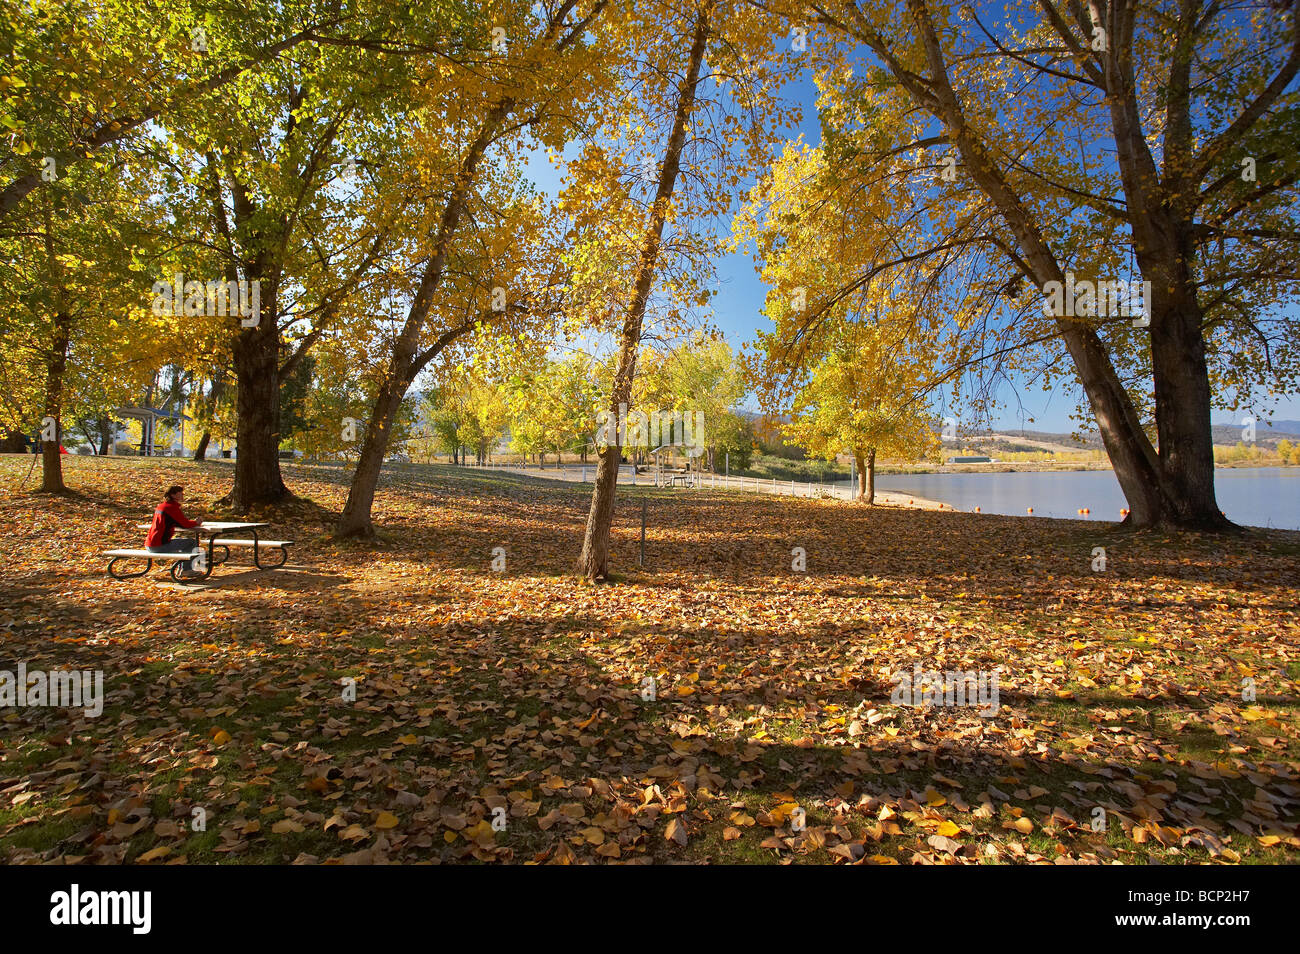 Autumn Trees at Boat Ramp Picnic Area by Khancoban Pondage Snowy Mountains Southern New South Wales Australia - Stock Image